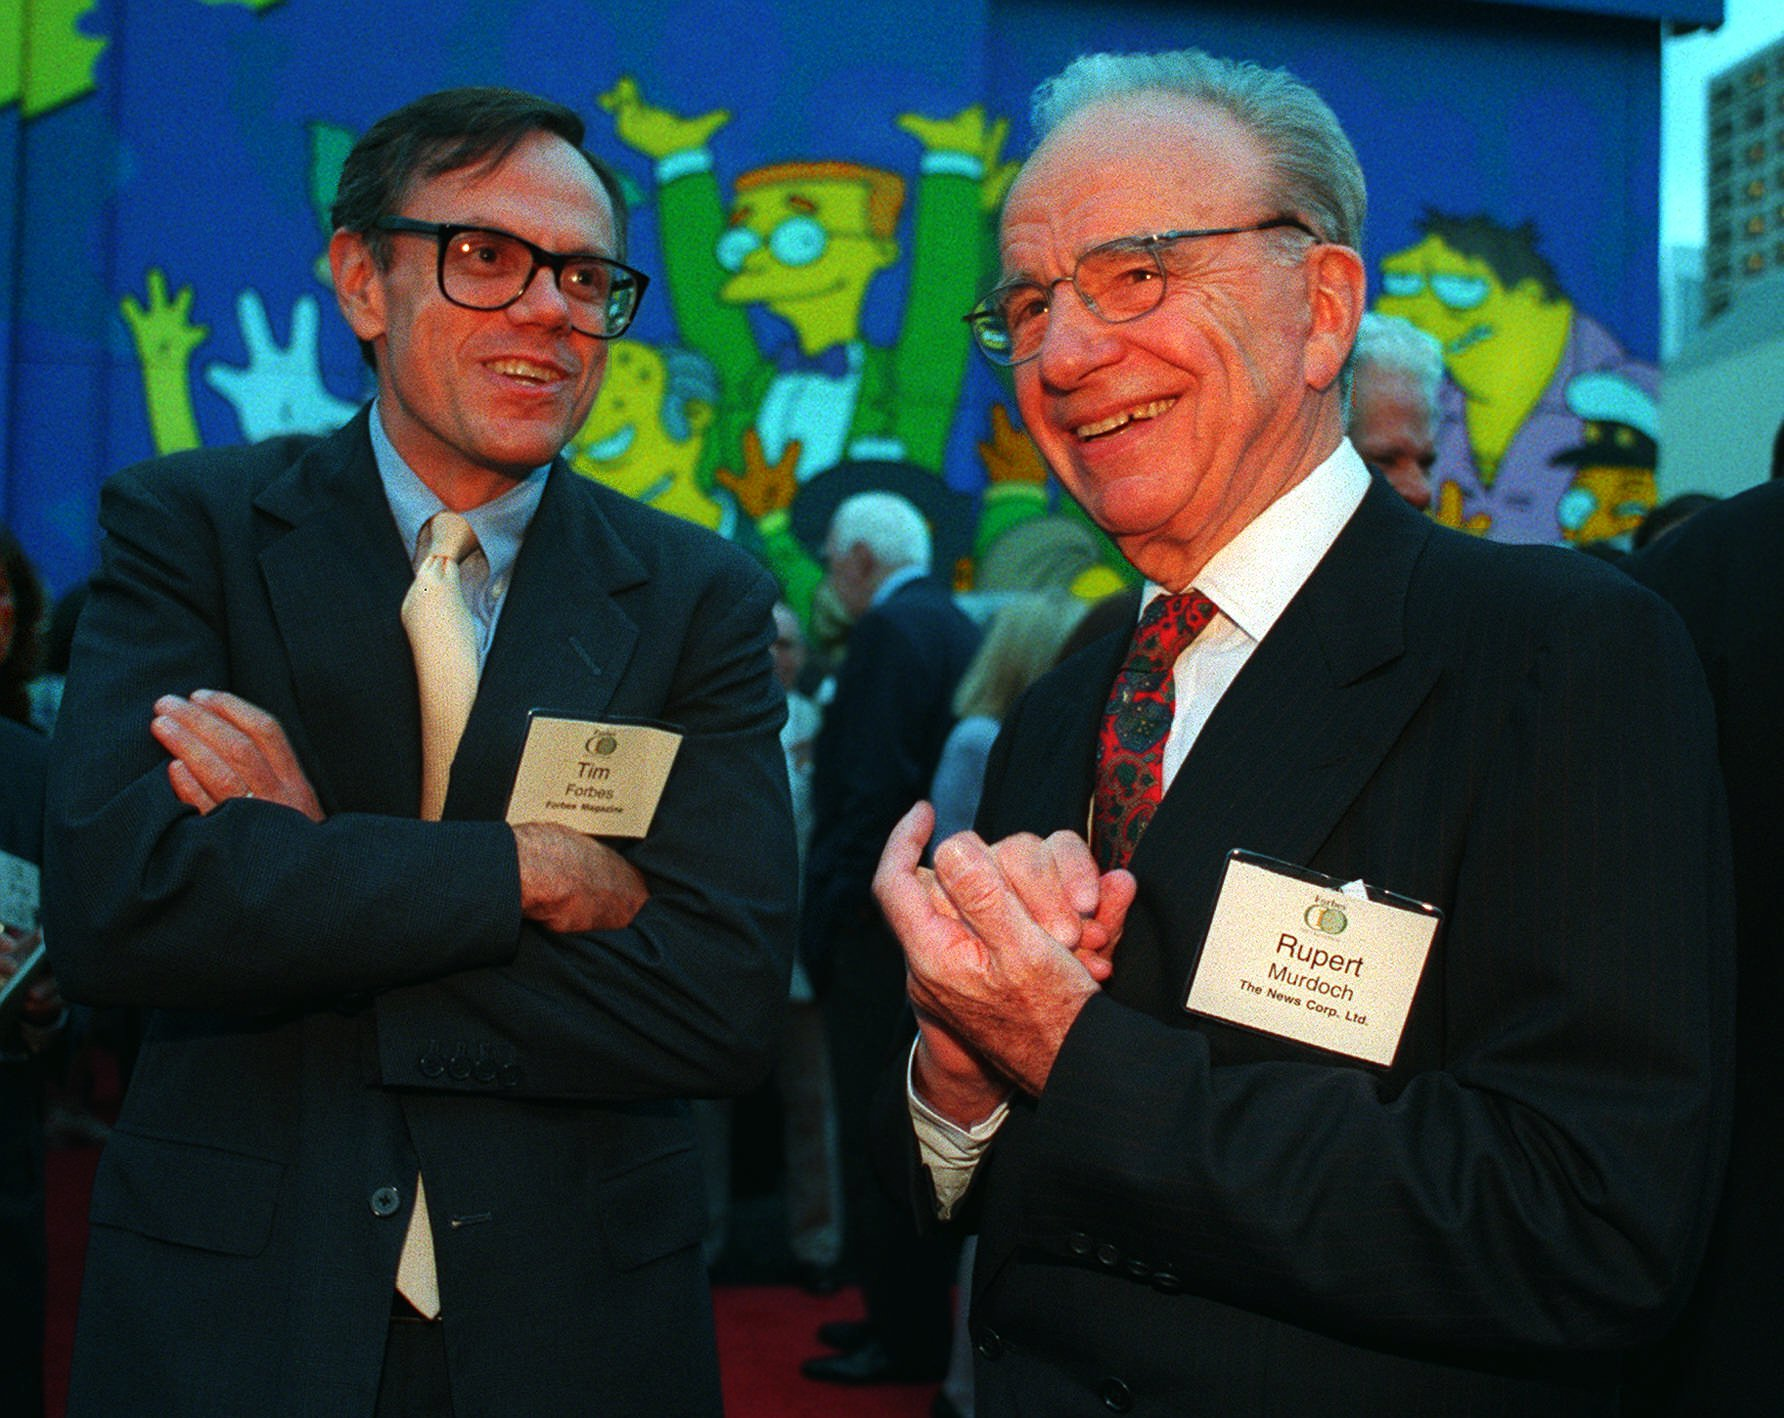 S&M: Rupert Murdoch – Won't somebody please think of the Simpsons?